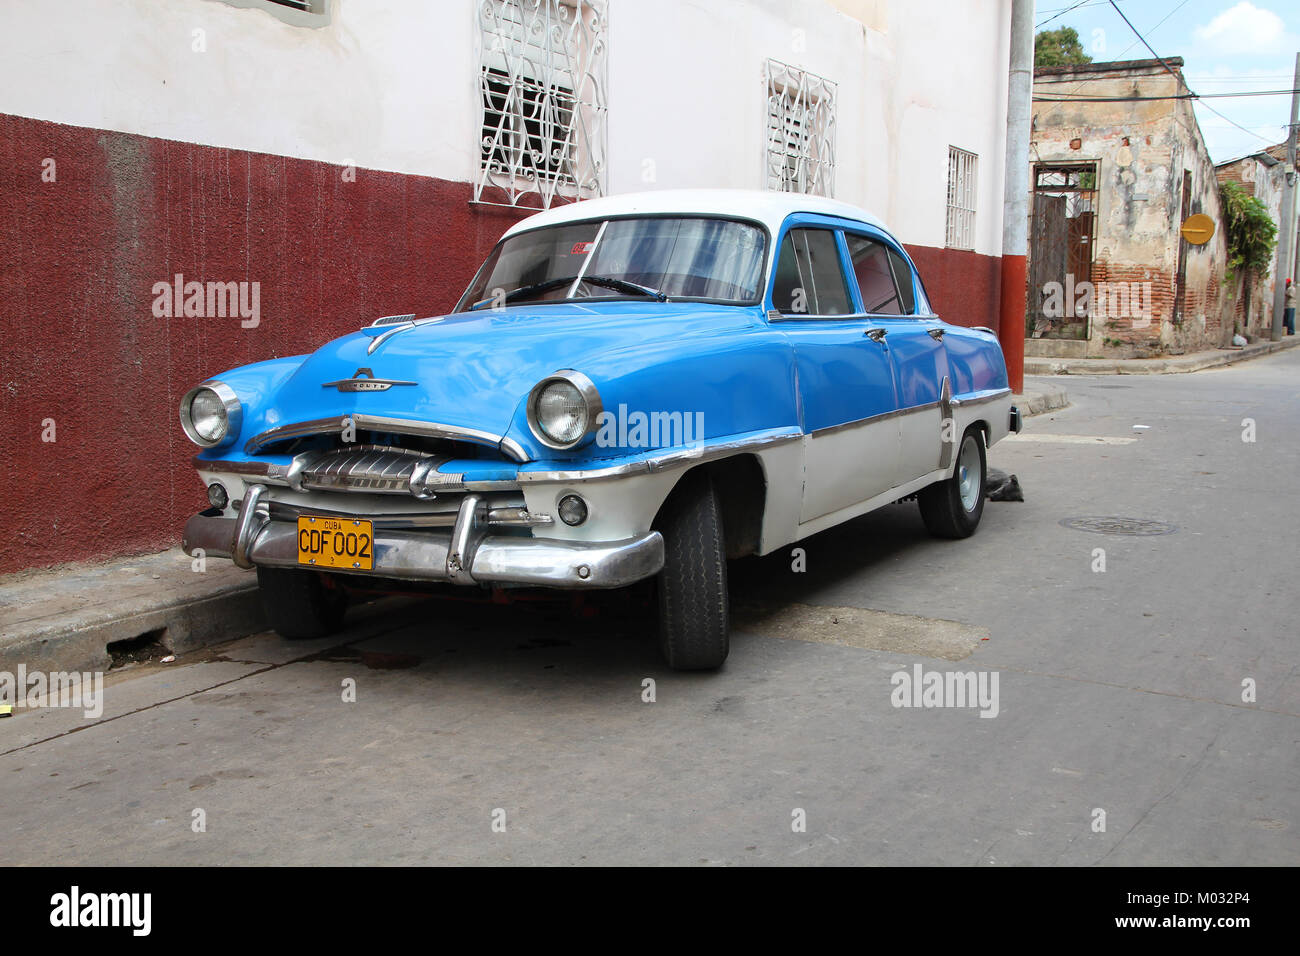 CAMAGUEY - FEBRUARY 18: Classic Plymouth car parked in the street on ...